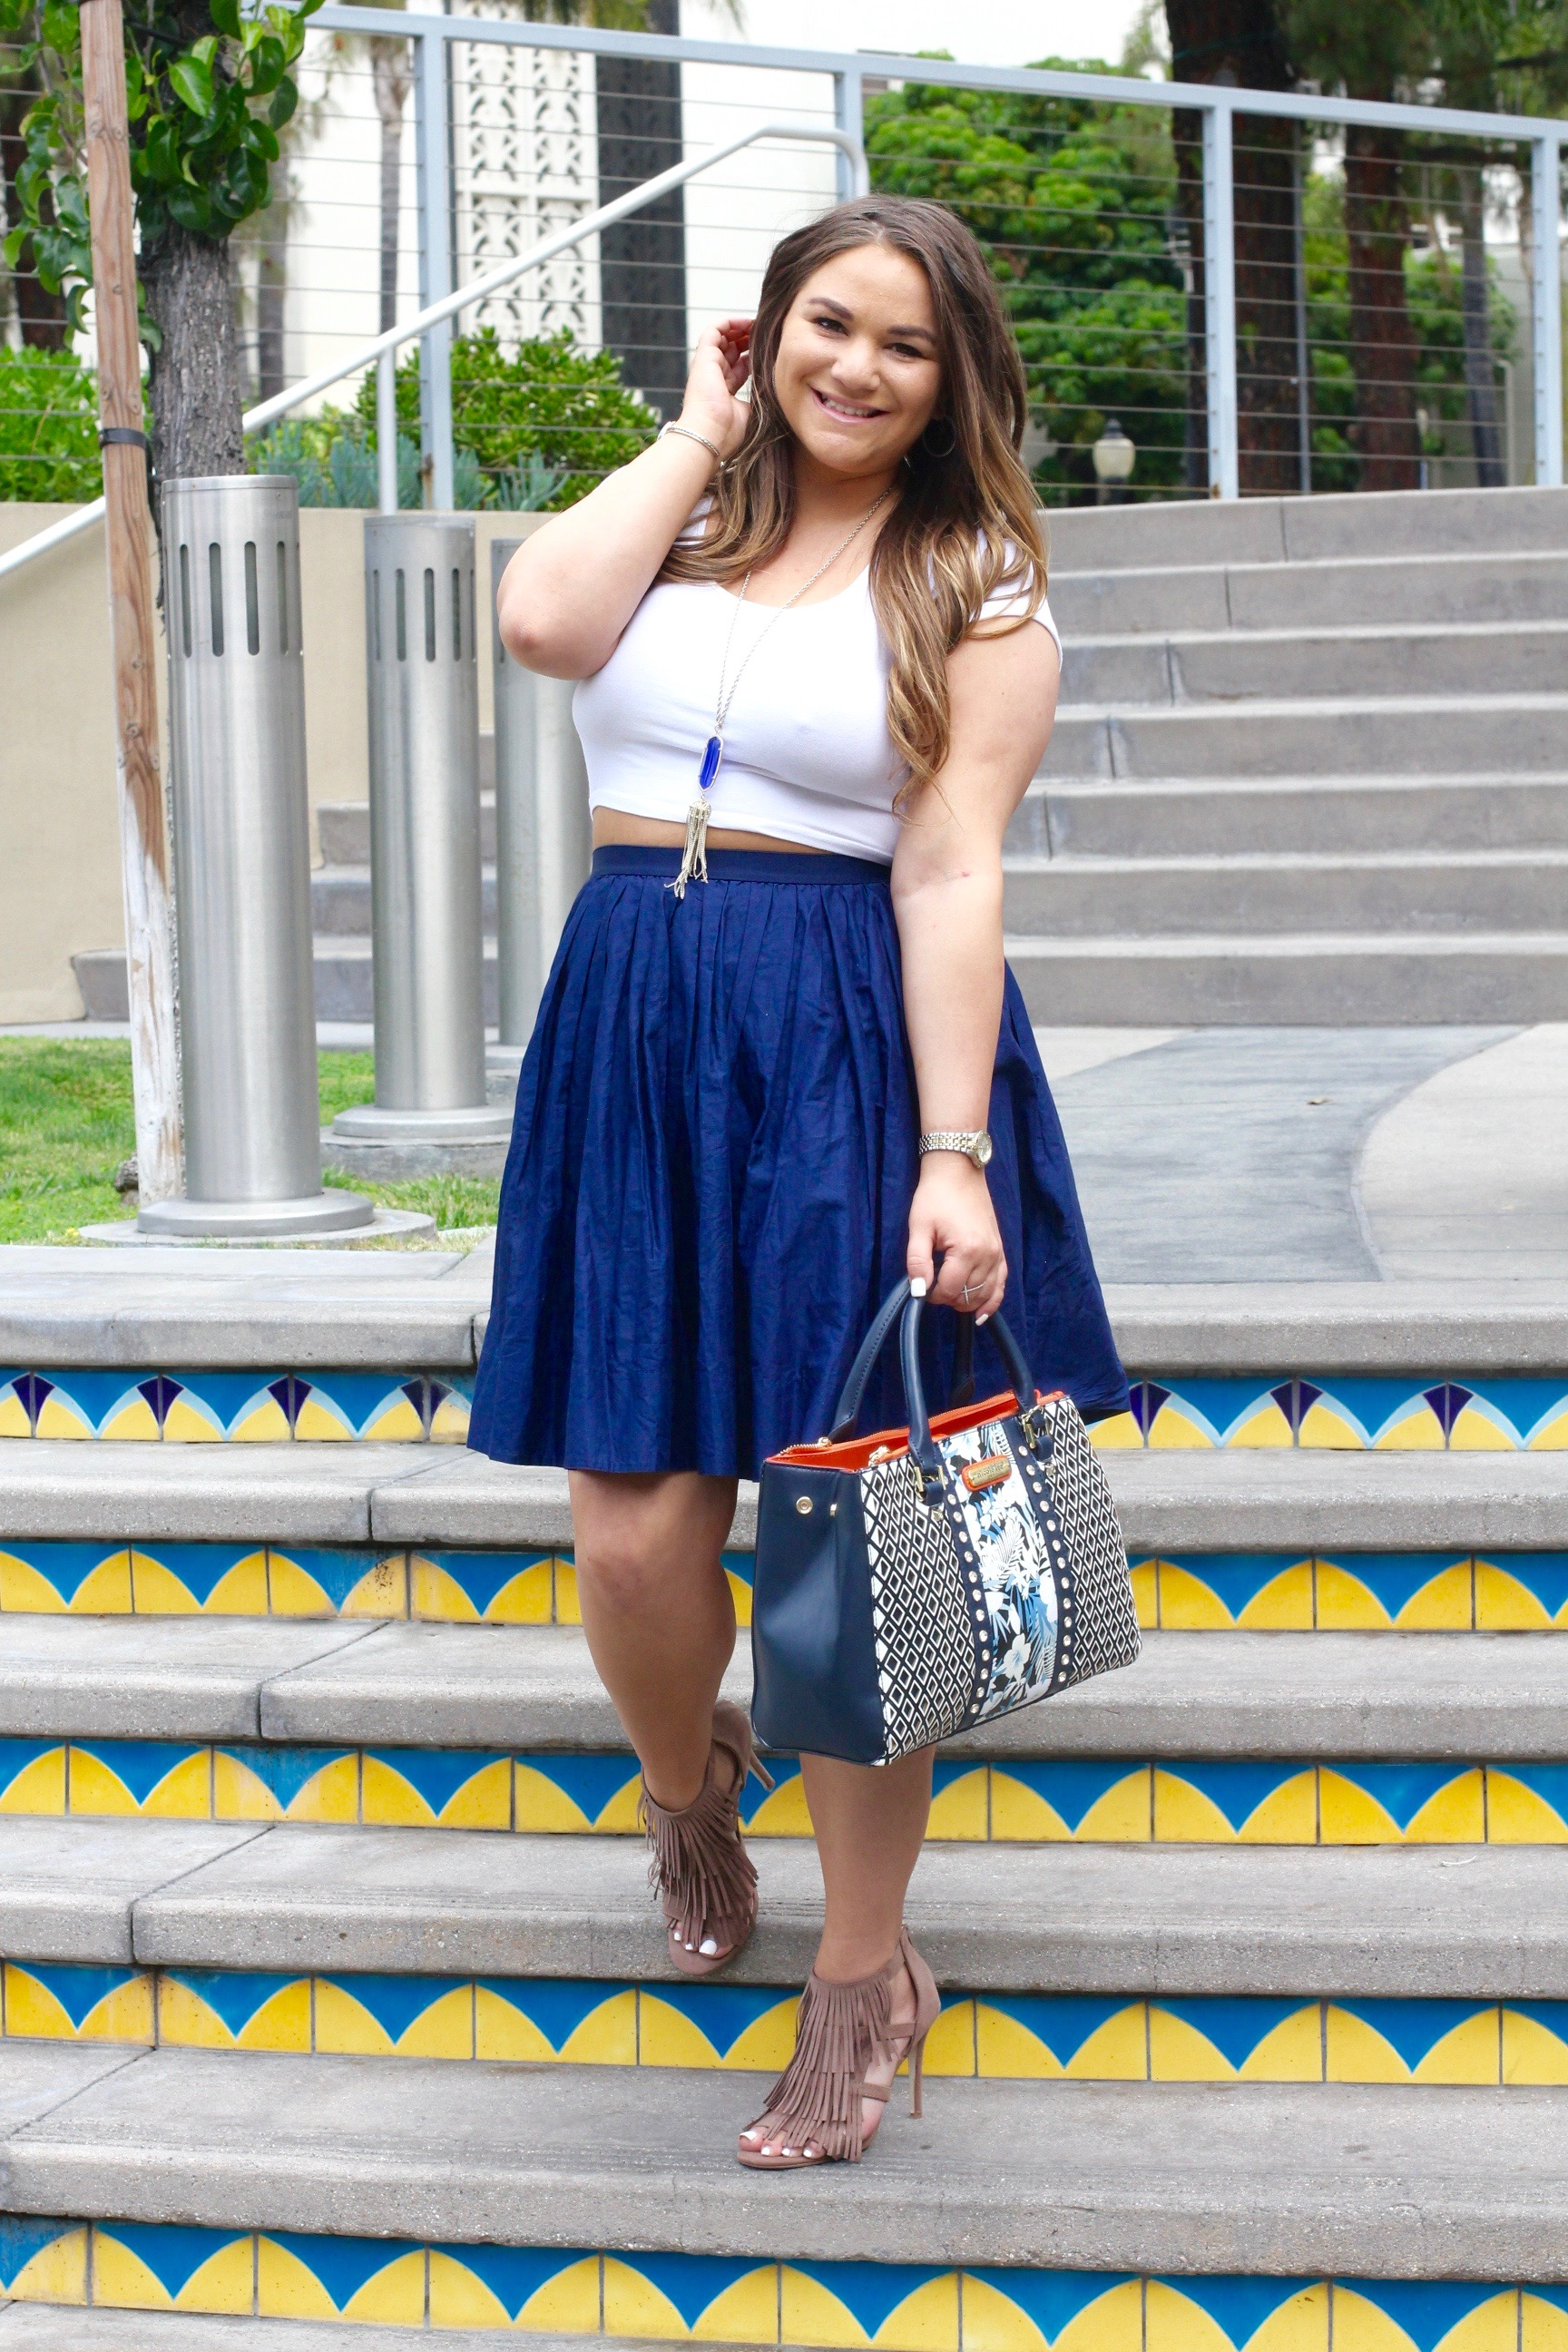 missyonmadison, melissa tierney, fashion blog, fashion blogger, style blogger, style blog, style guide, navy blue skirt, navy blue midi skirt, uniqlo skirt, nicole lee usa bag, nicole lee bag, floral tote, outfit inspo, spring style, white crop top, white denim jacket, old navy denim jacket, kendra scott rayne necklace, ami clubwear, tan fringe heels, fringe heels, how to wear a midi skirt, burbank california, moving,